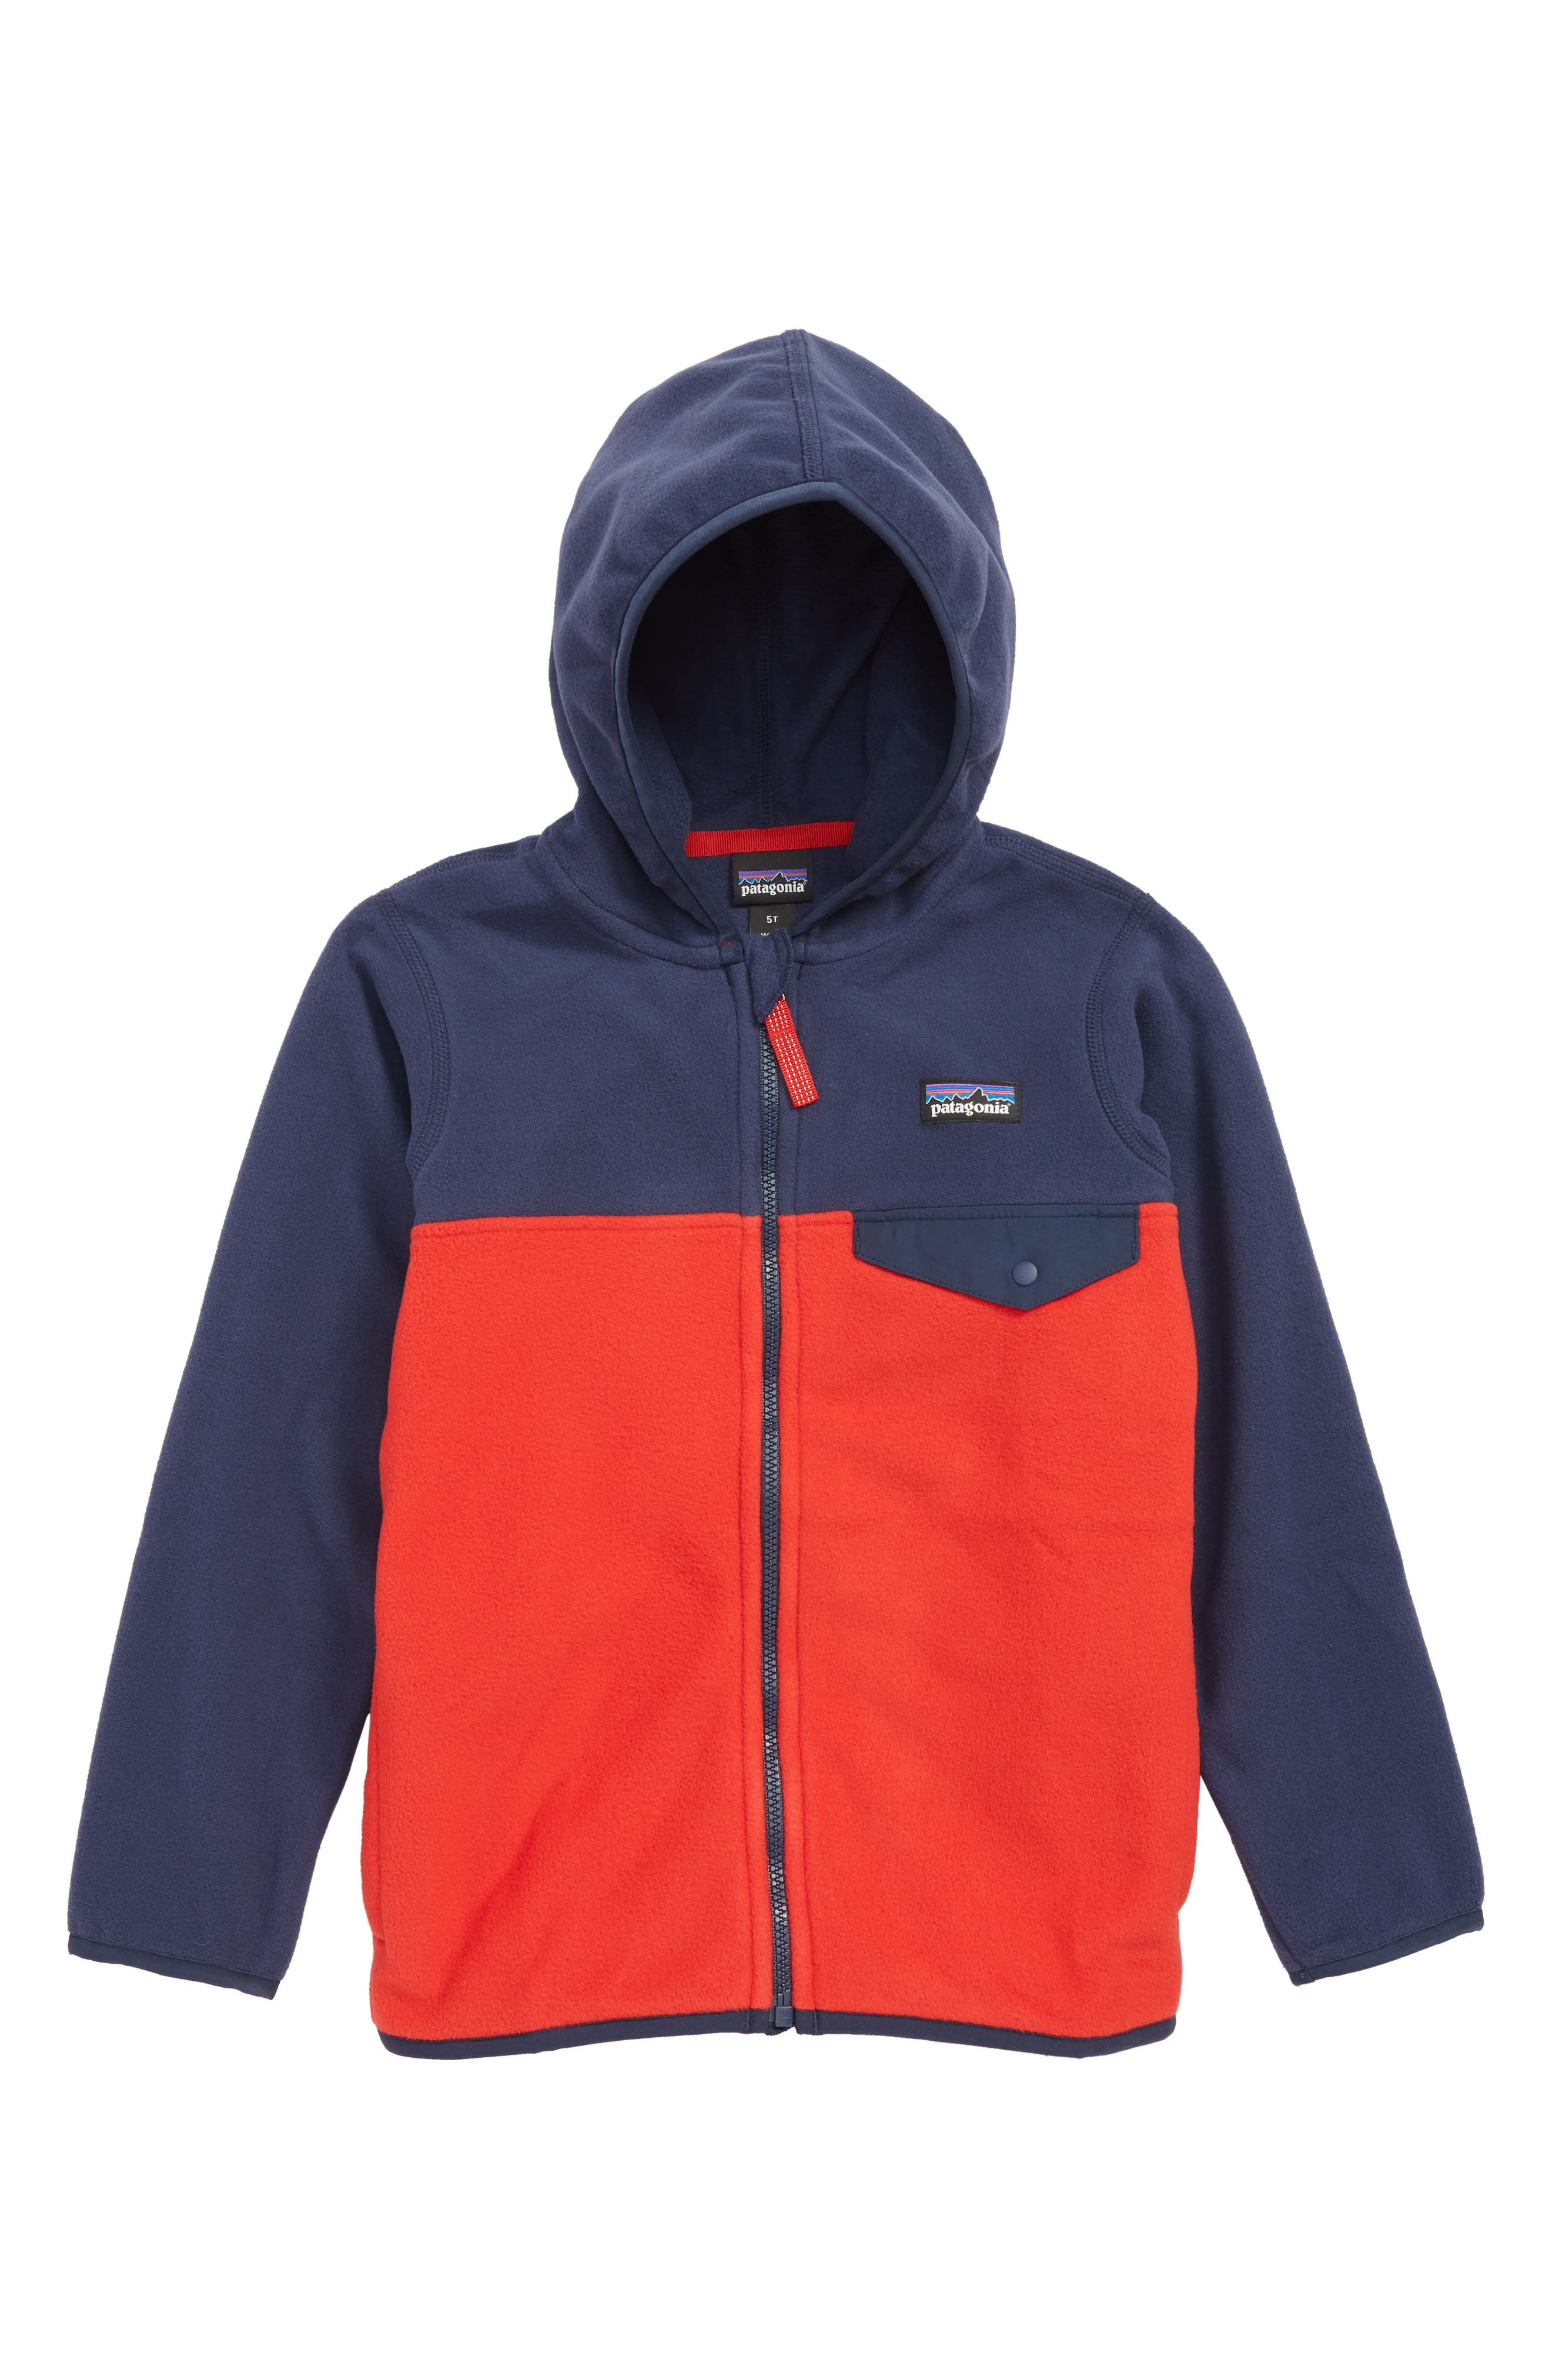 Toddler Boys Patagonia Micro D SnapT Fleece Jacket Size 3T  Red